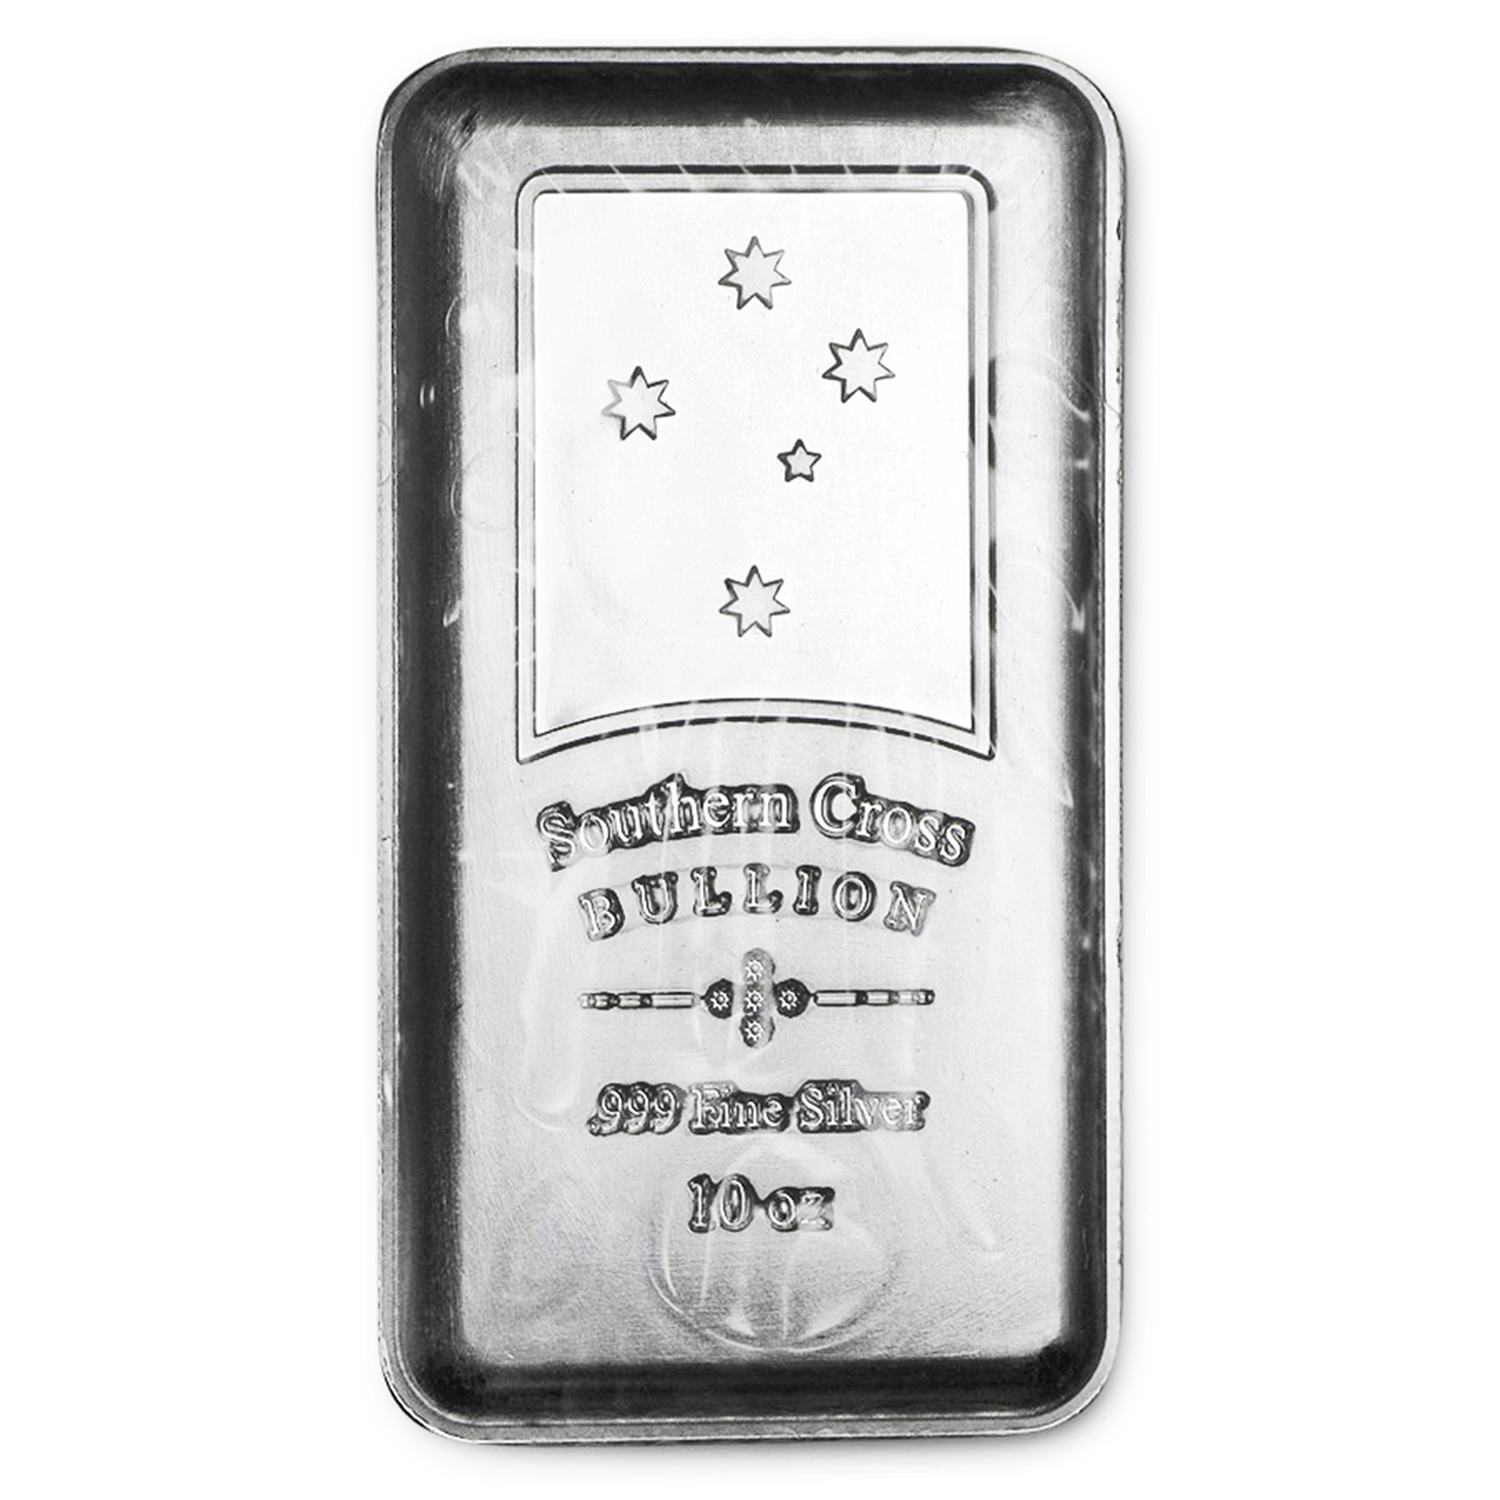 10 oz Silver Bar - Southern Cross Bullion (Security Line)